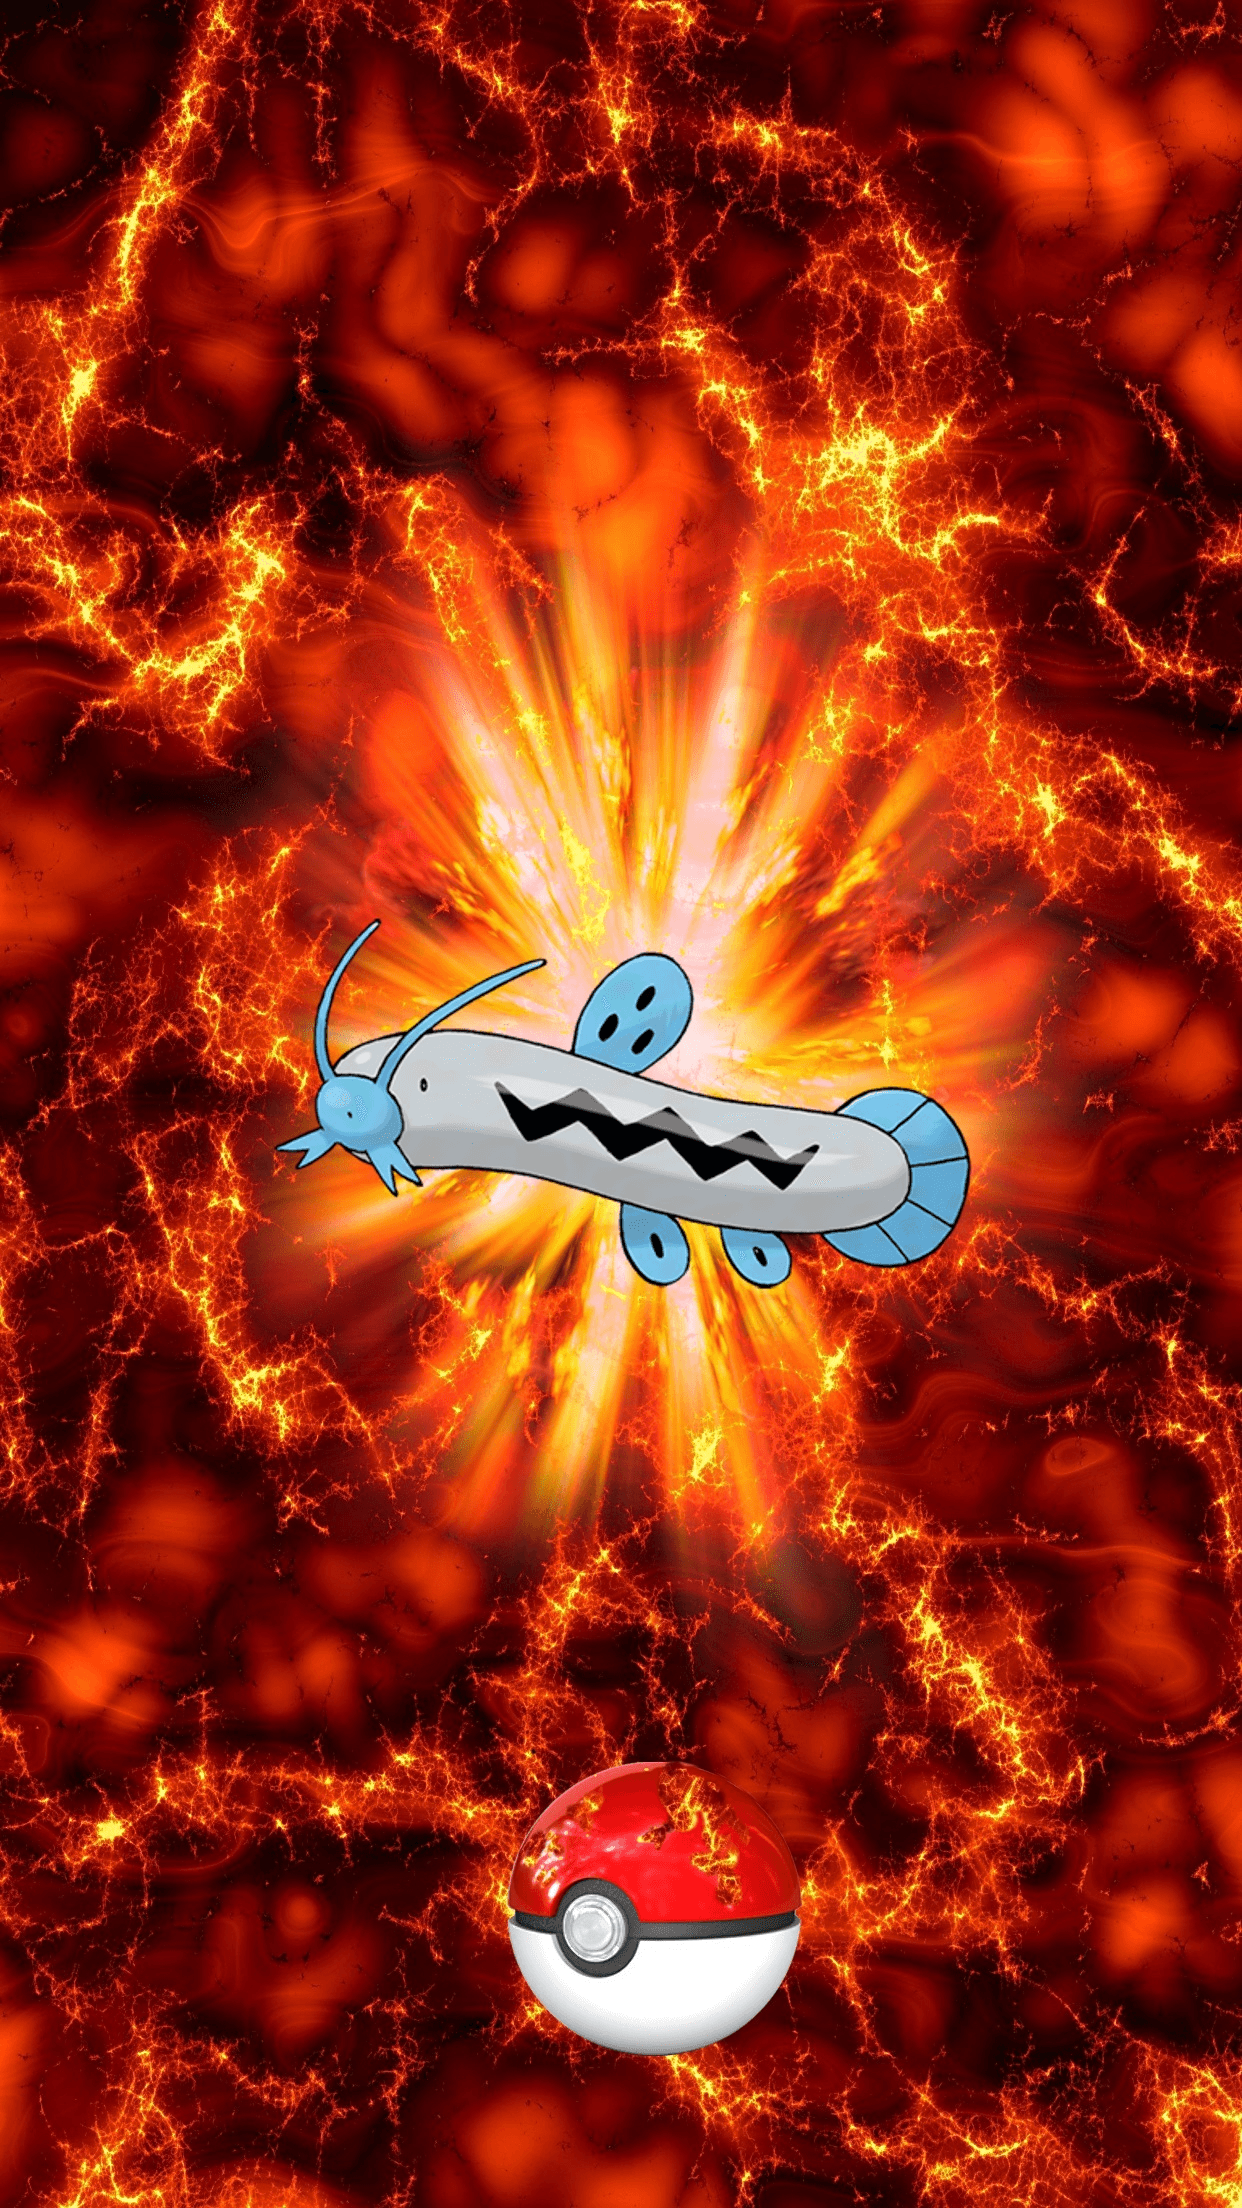 339 Fire Pokeball Barboach Unknown Egg | Wallpaper